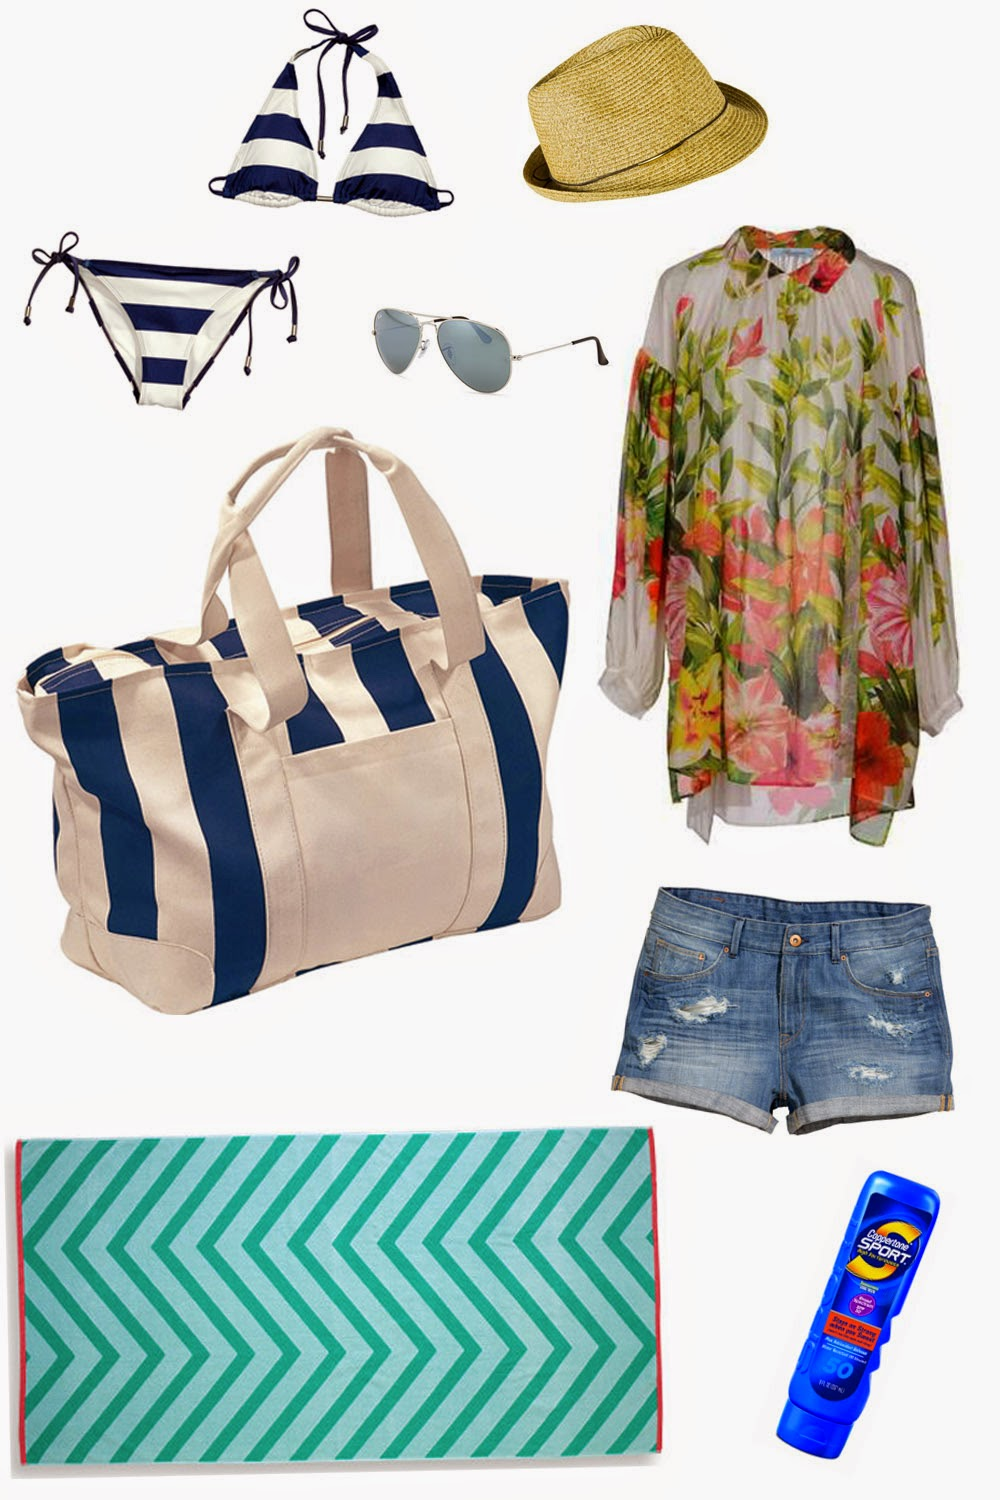 Edie's Closet, Summer Beach Bag Essentials